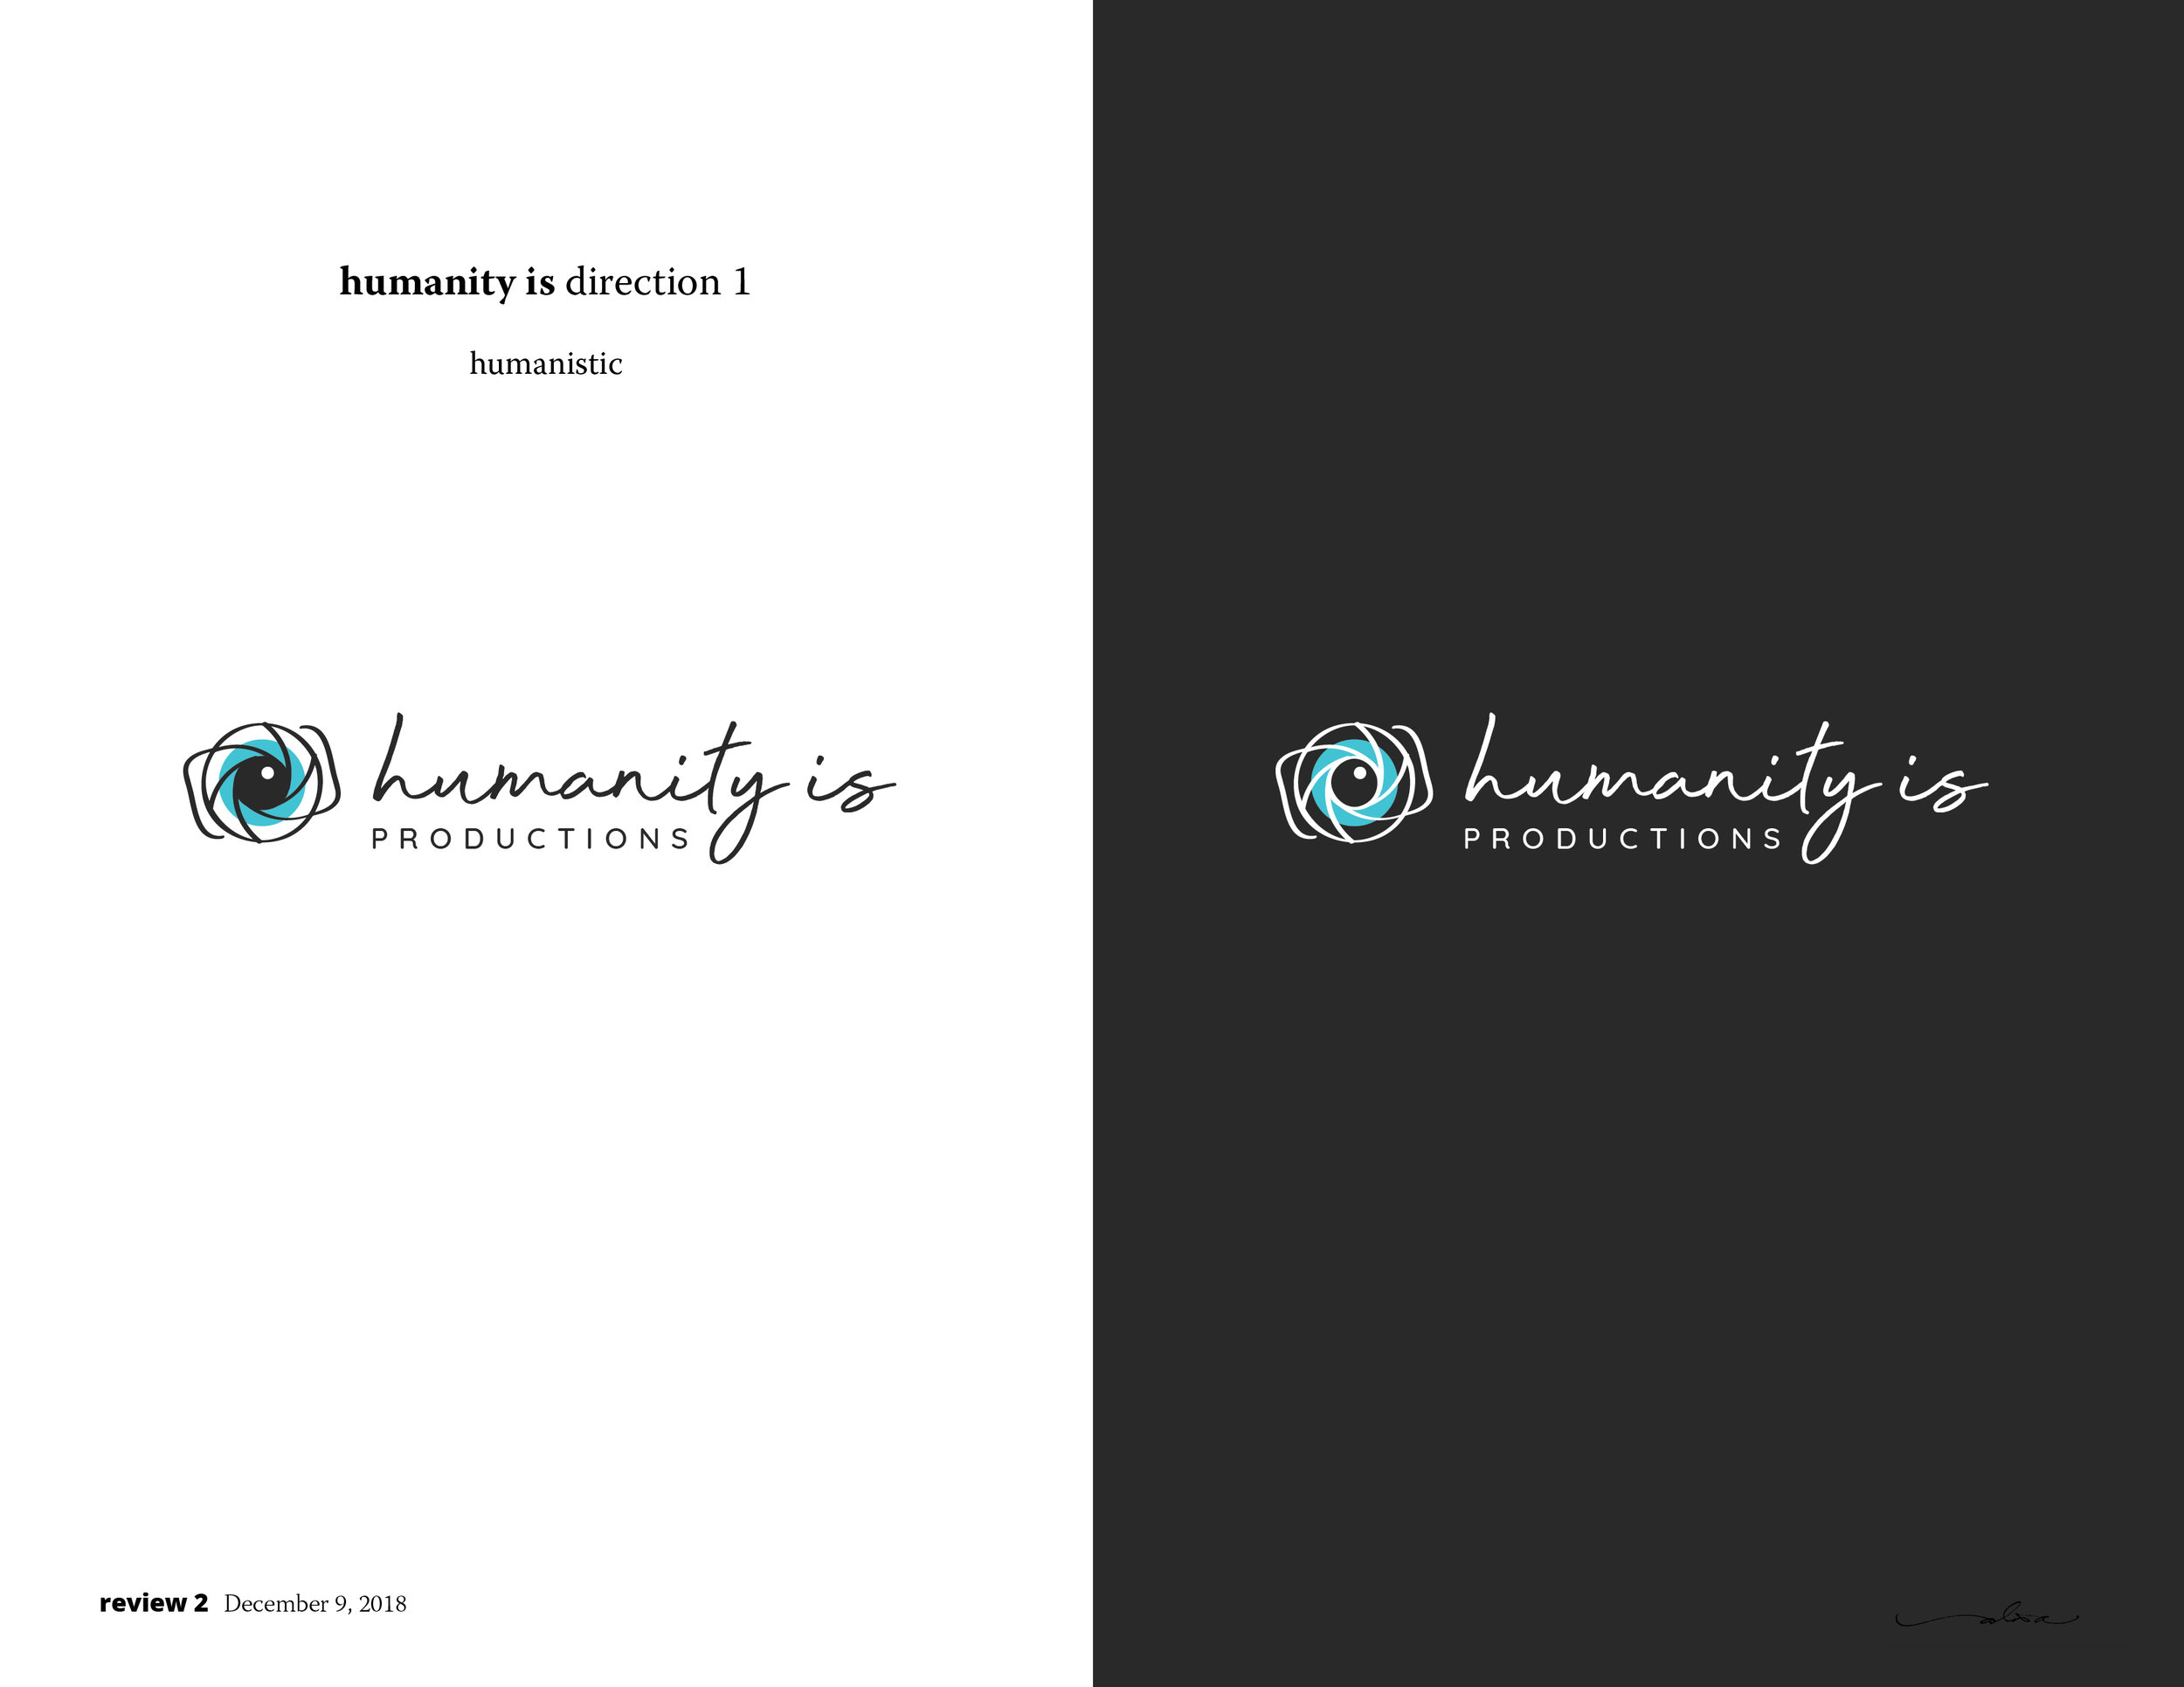 20181209_HumanityIs-Logo_Review2-v0-01.jpg